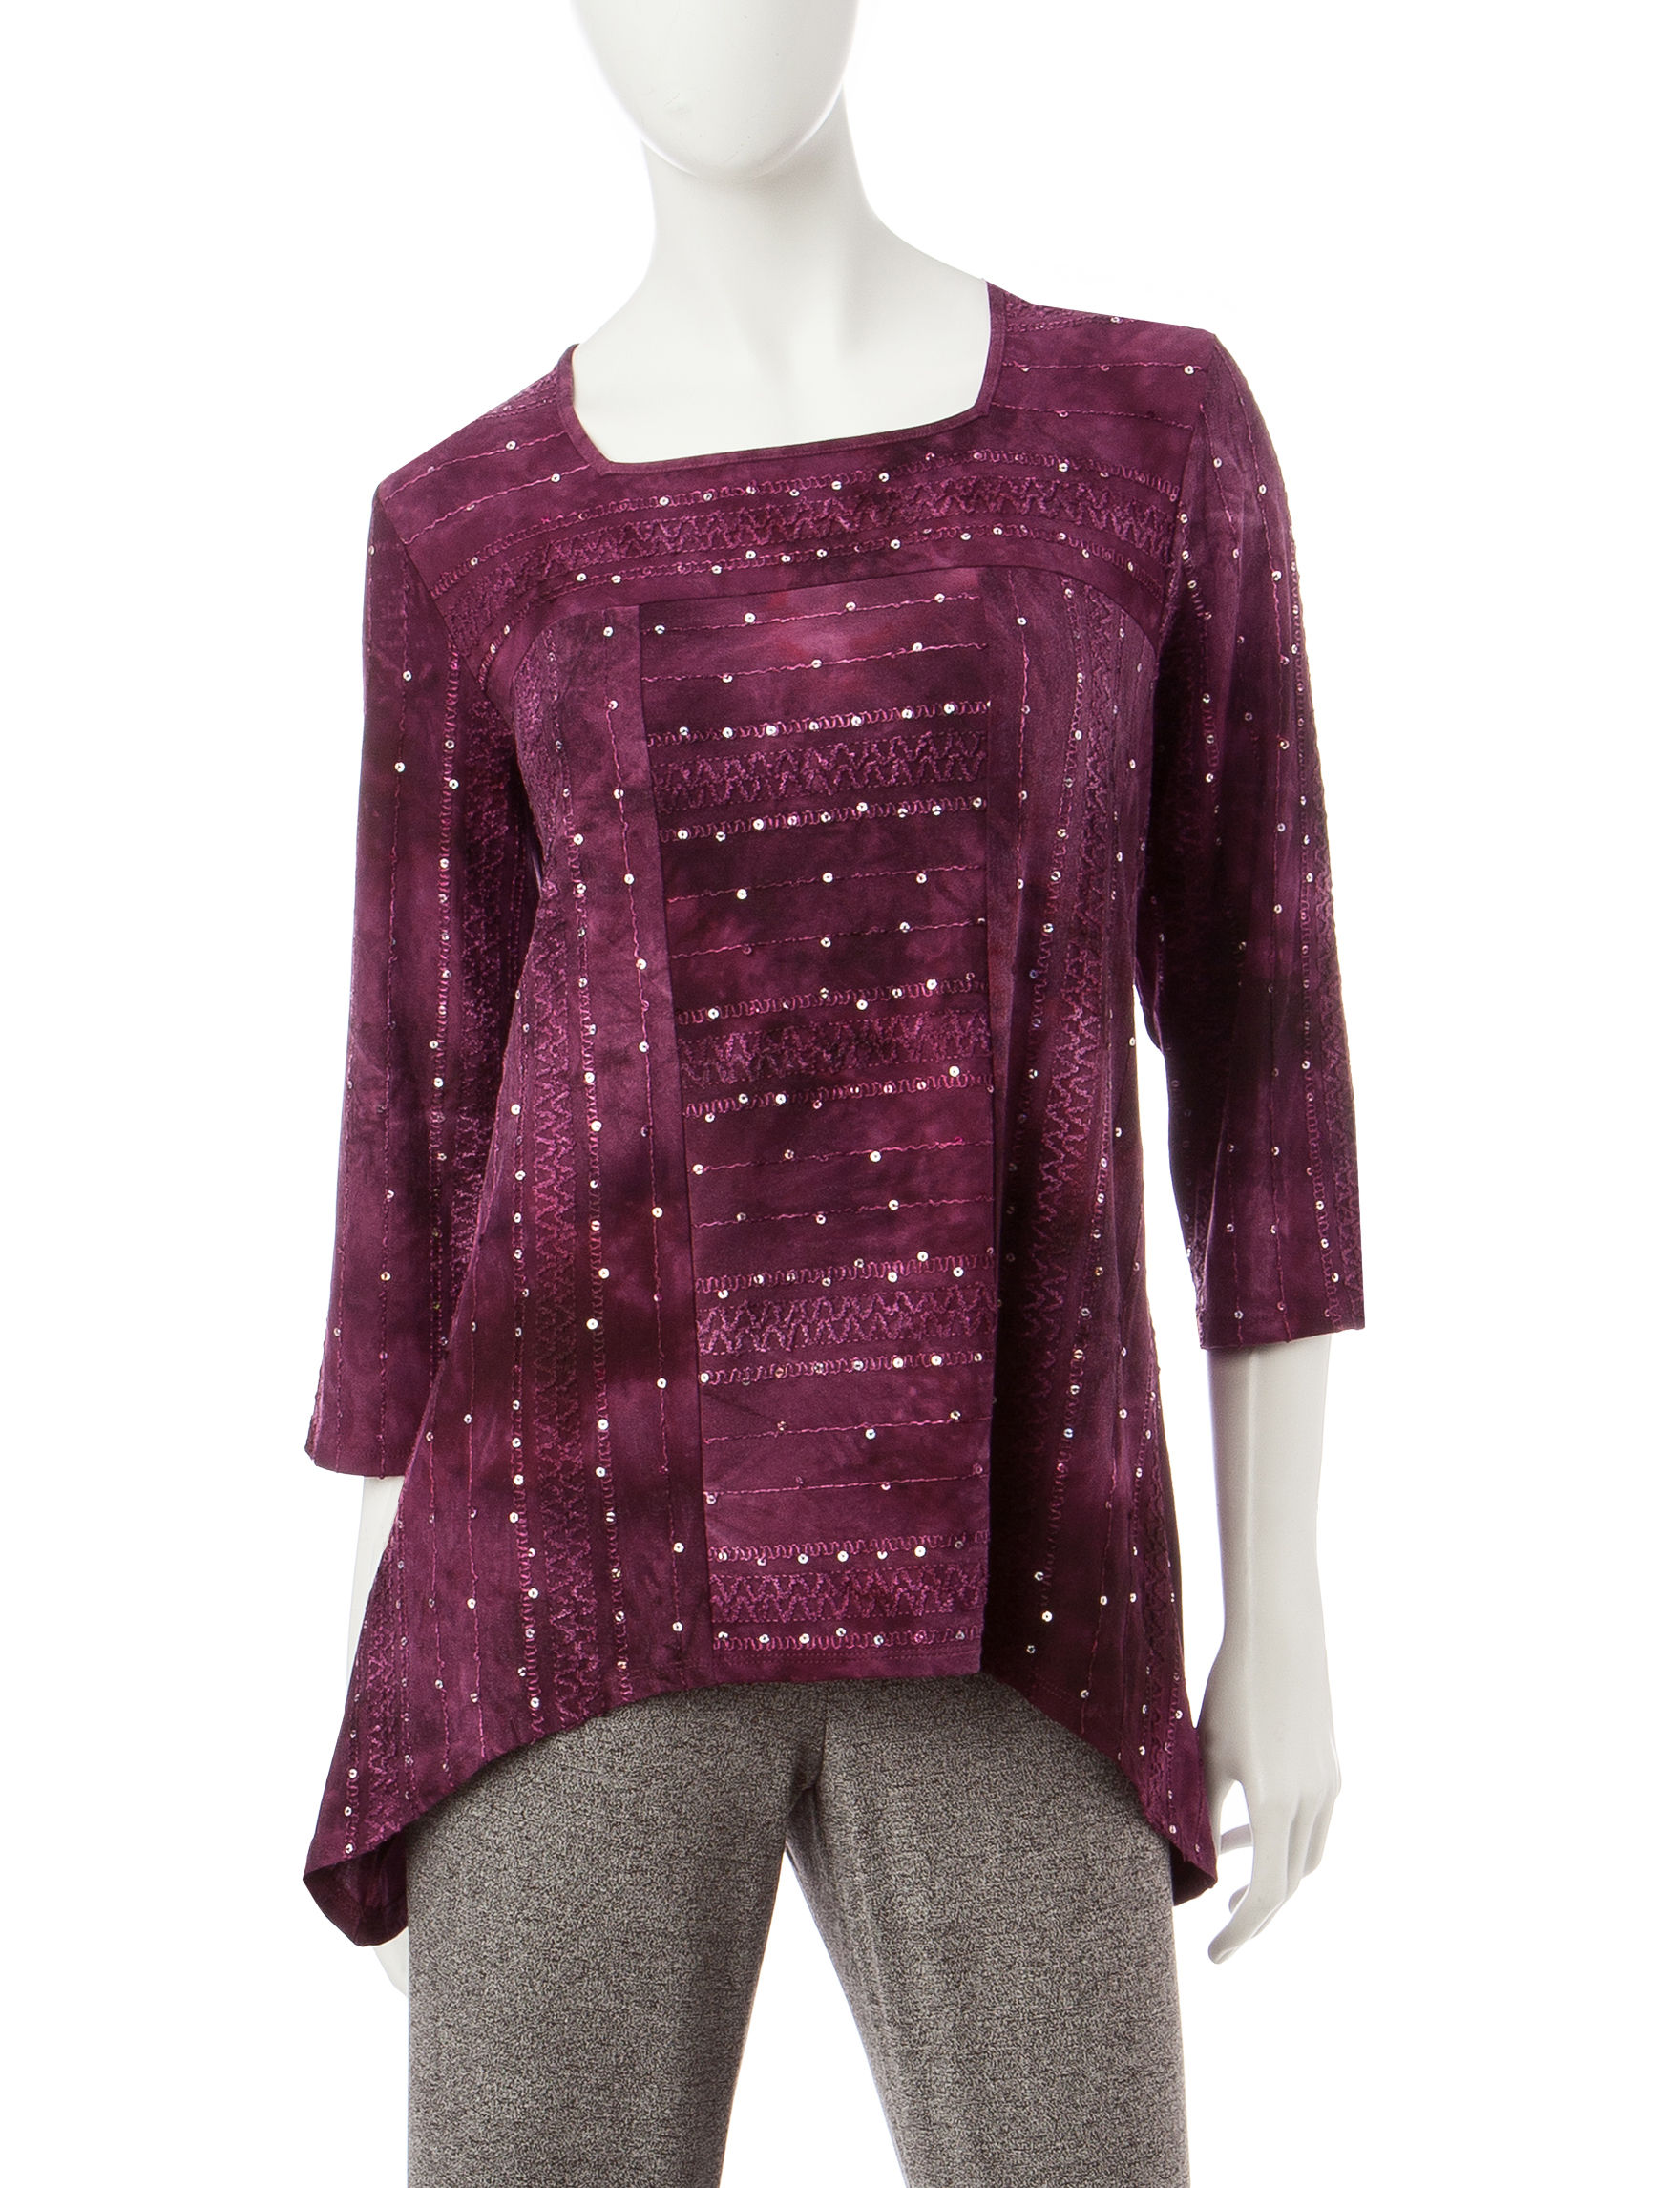 Alfred Dunner Wine Shirts & Blouses